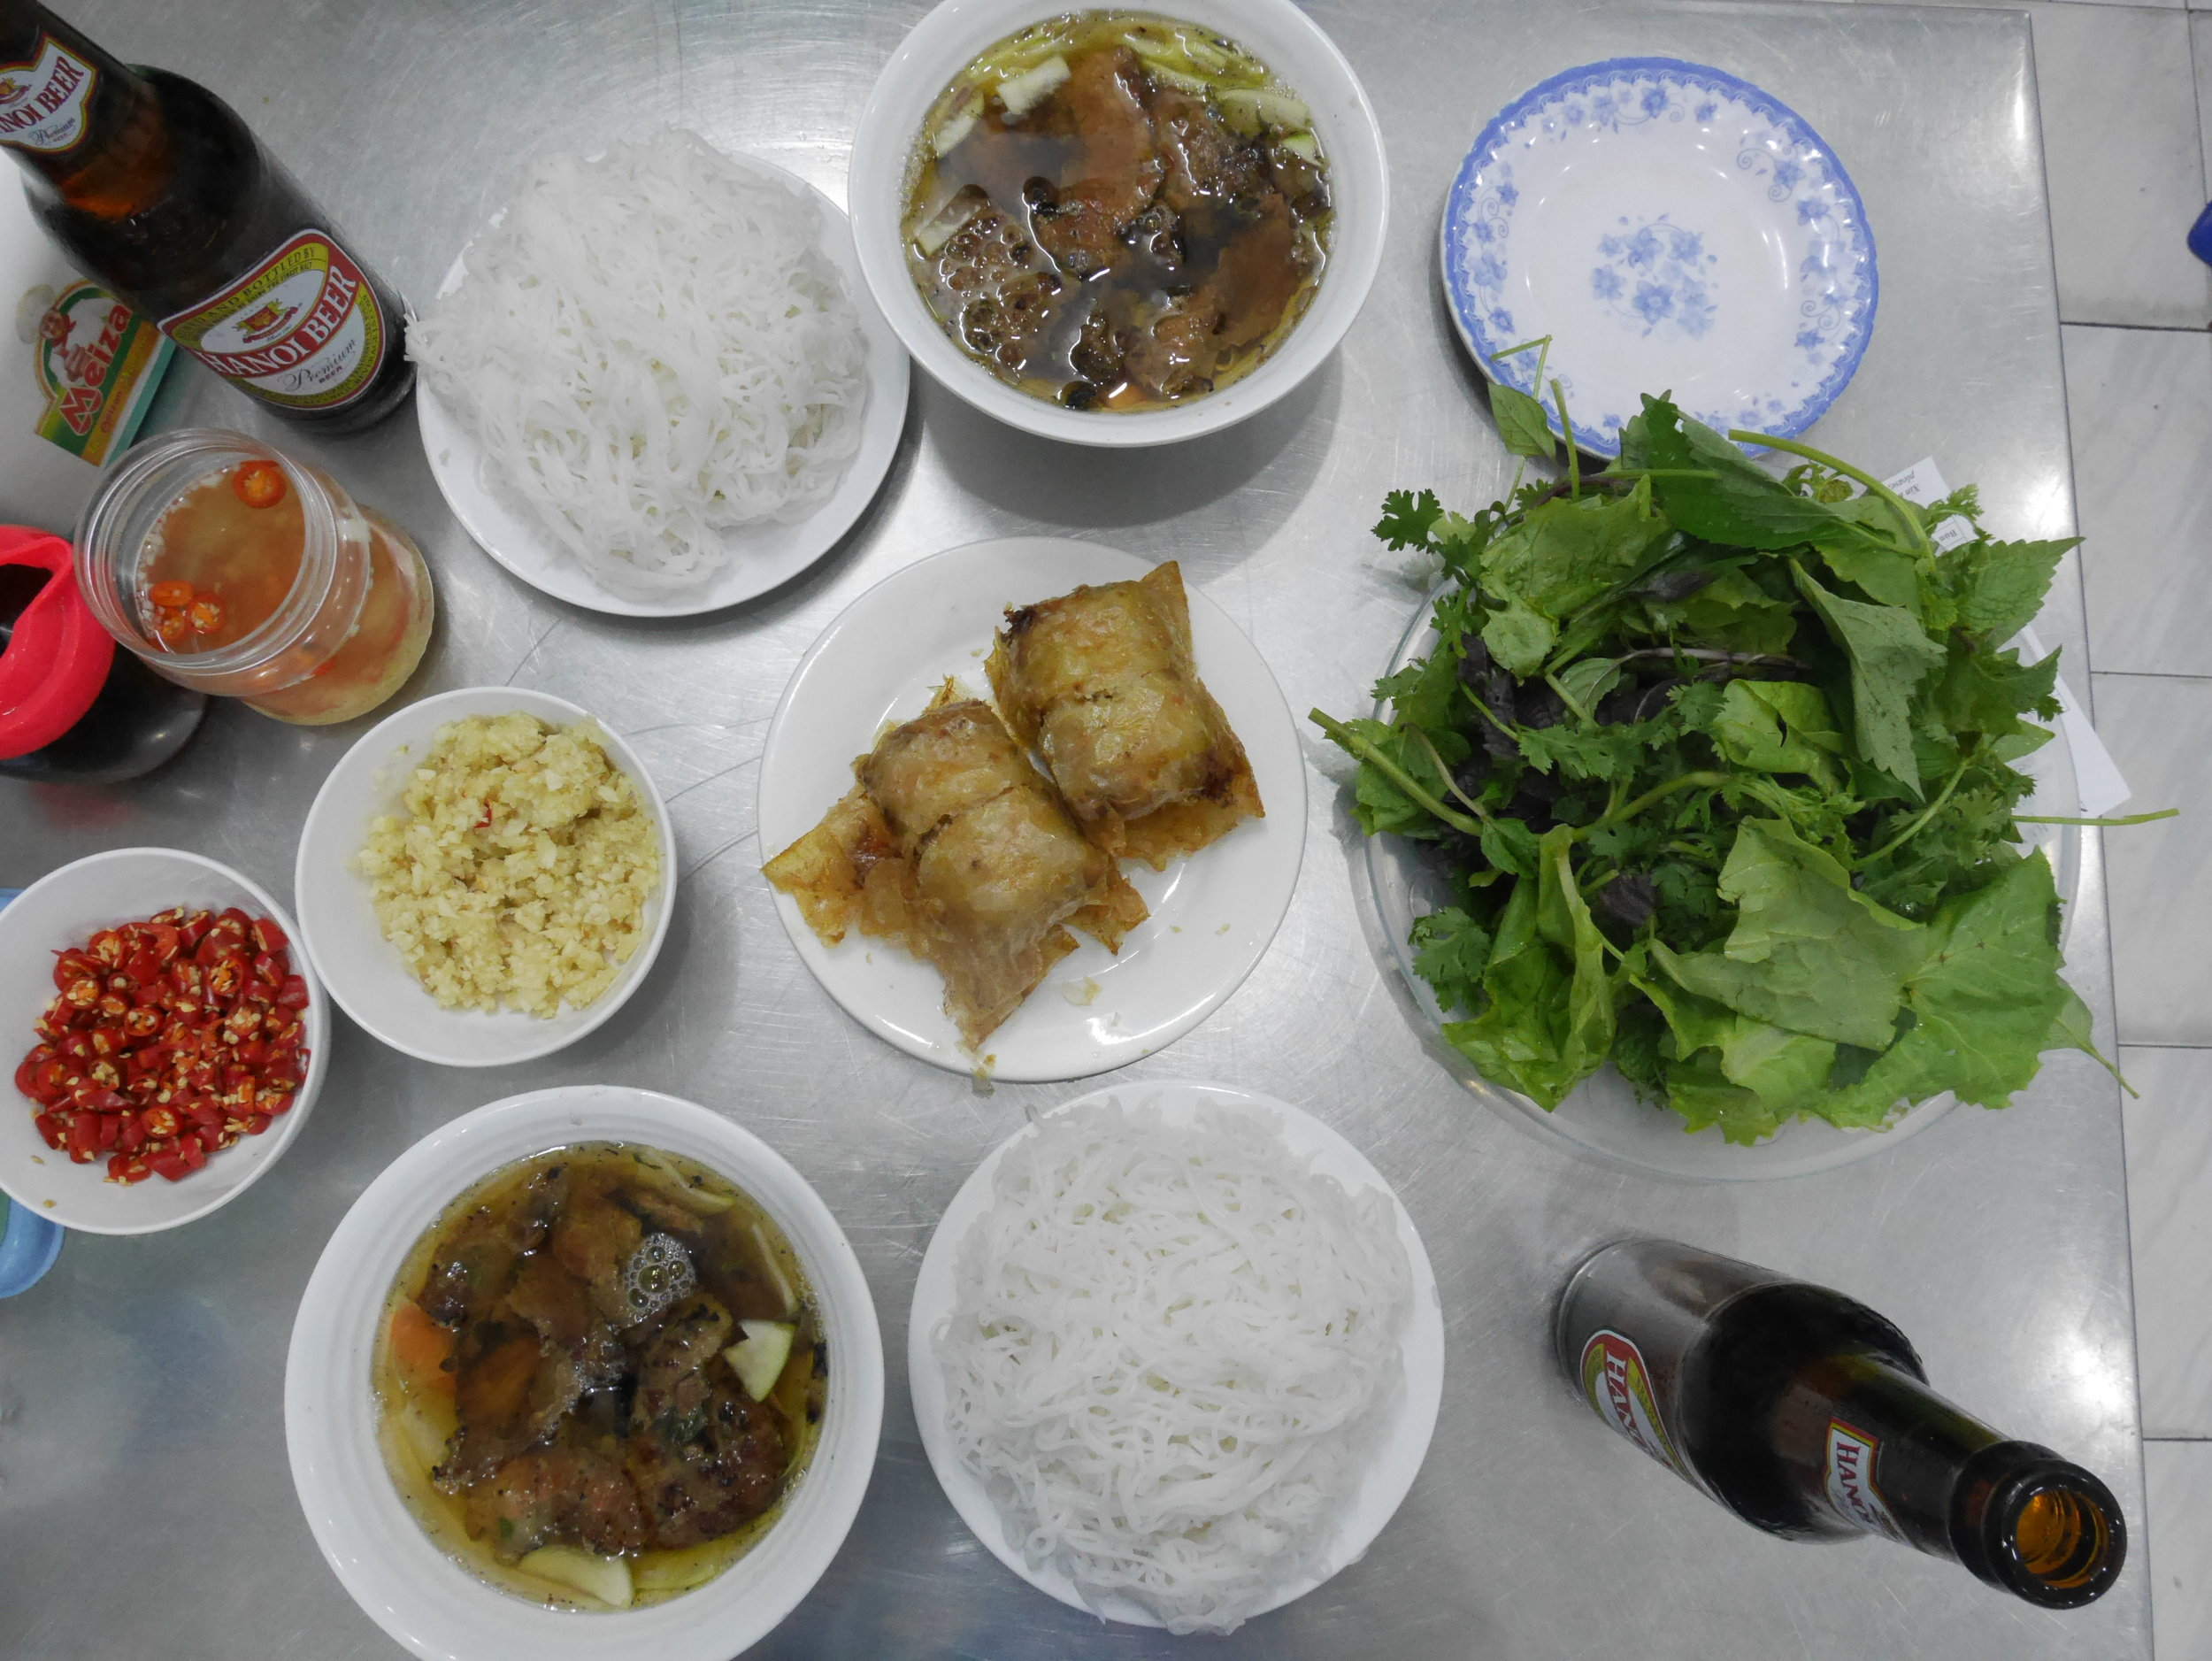 A super filling and delicious meal, washed down with a Hanoi Beer.